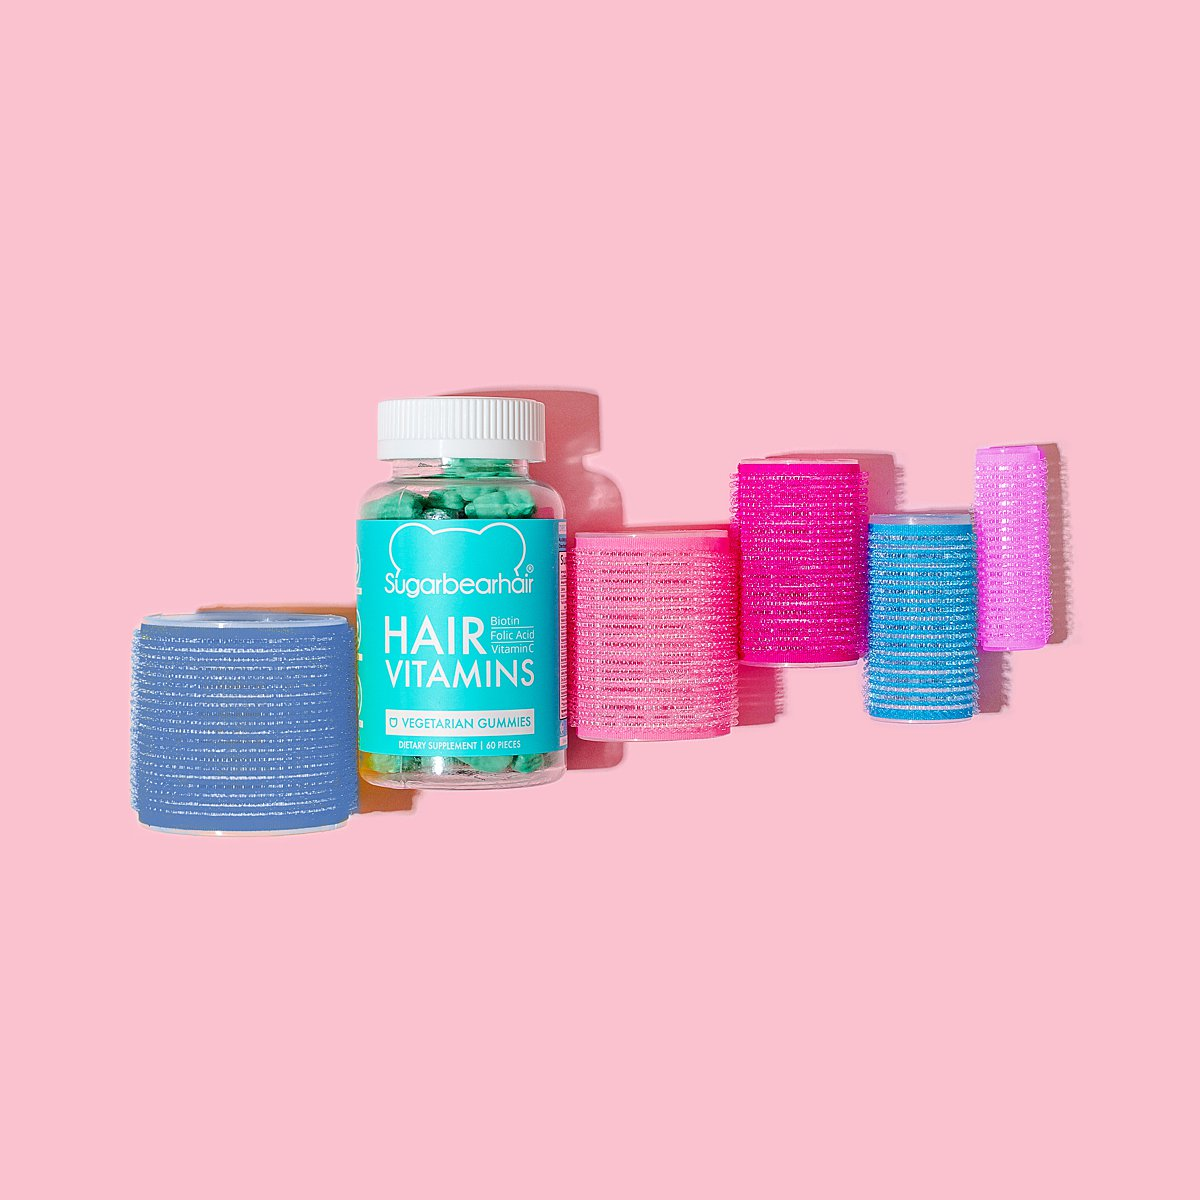 Colourful content creation for SugarBearHair vitamin supplements. Styled product stills photography by Marianne Taylor.